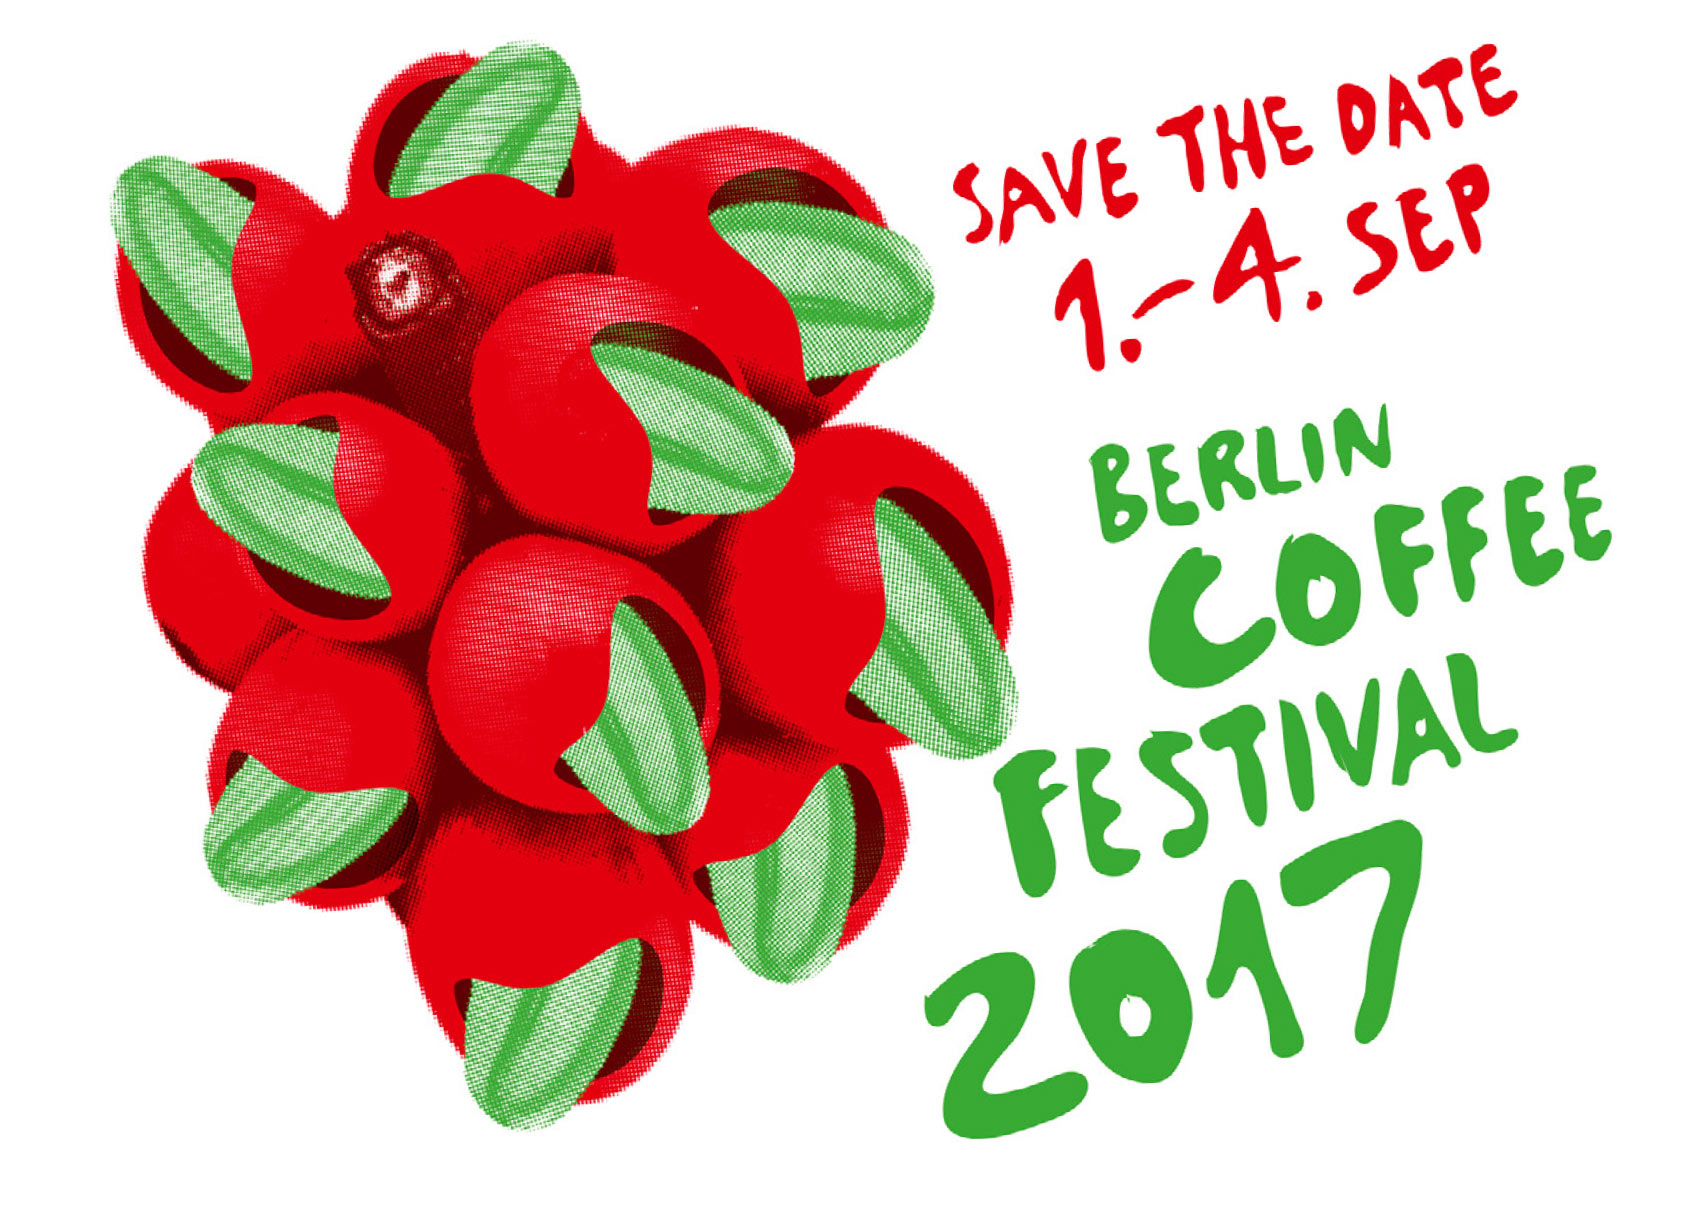 Berlin Coffee Festival 2017